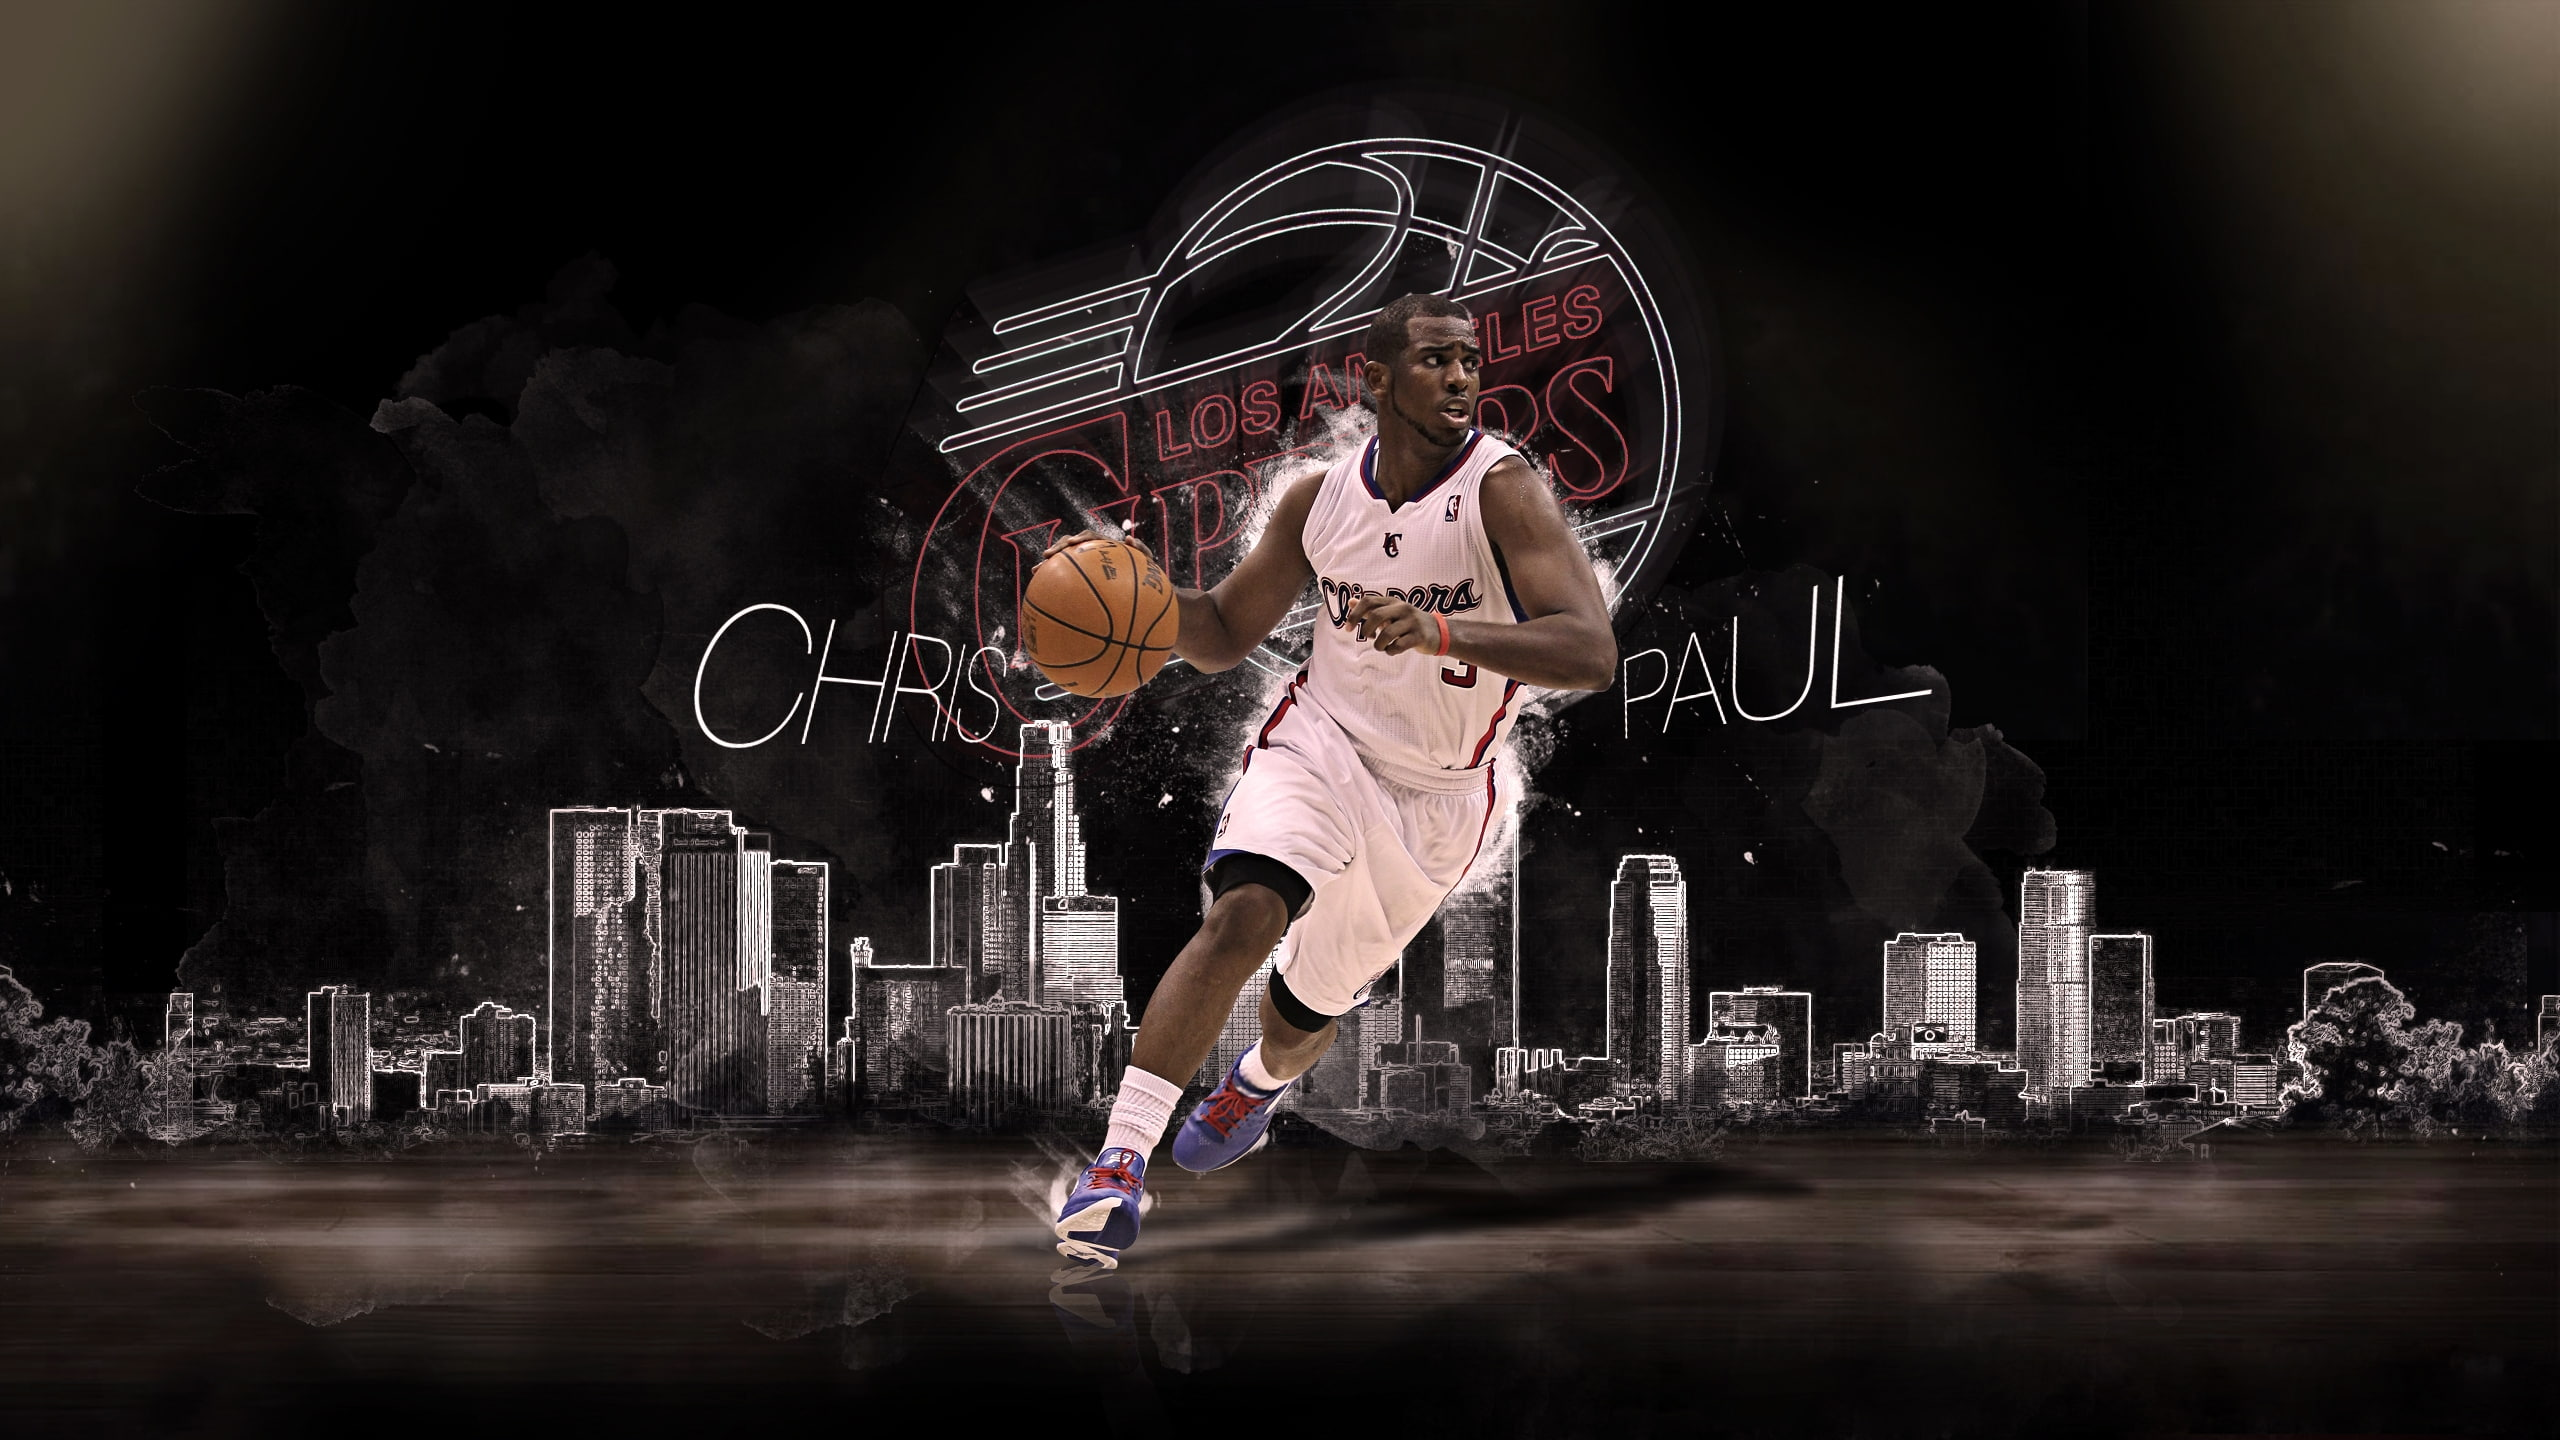 Chris Paul Los Angeles Clippers, Sportsman - Lakers Wallpaper Of Kobe , HD Wallpaper & Backgrounds